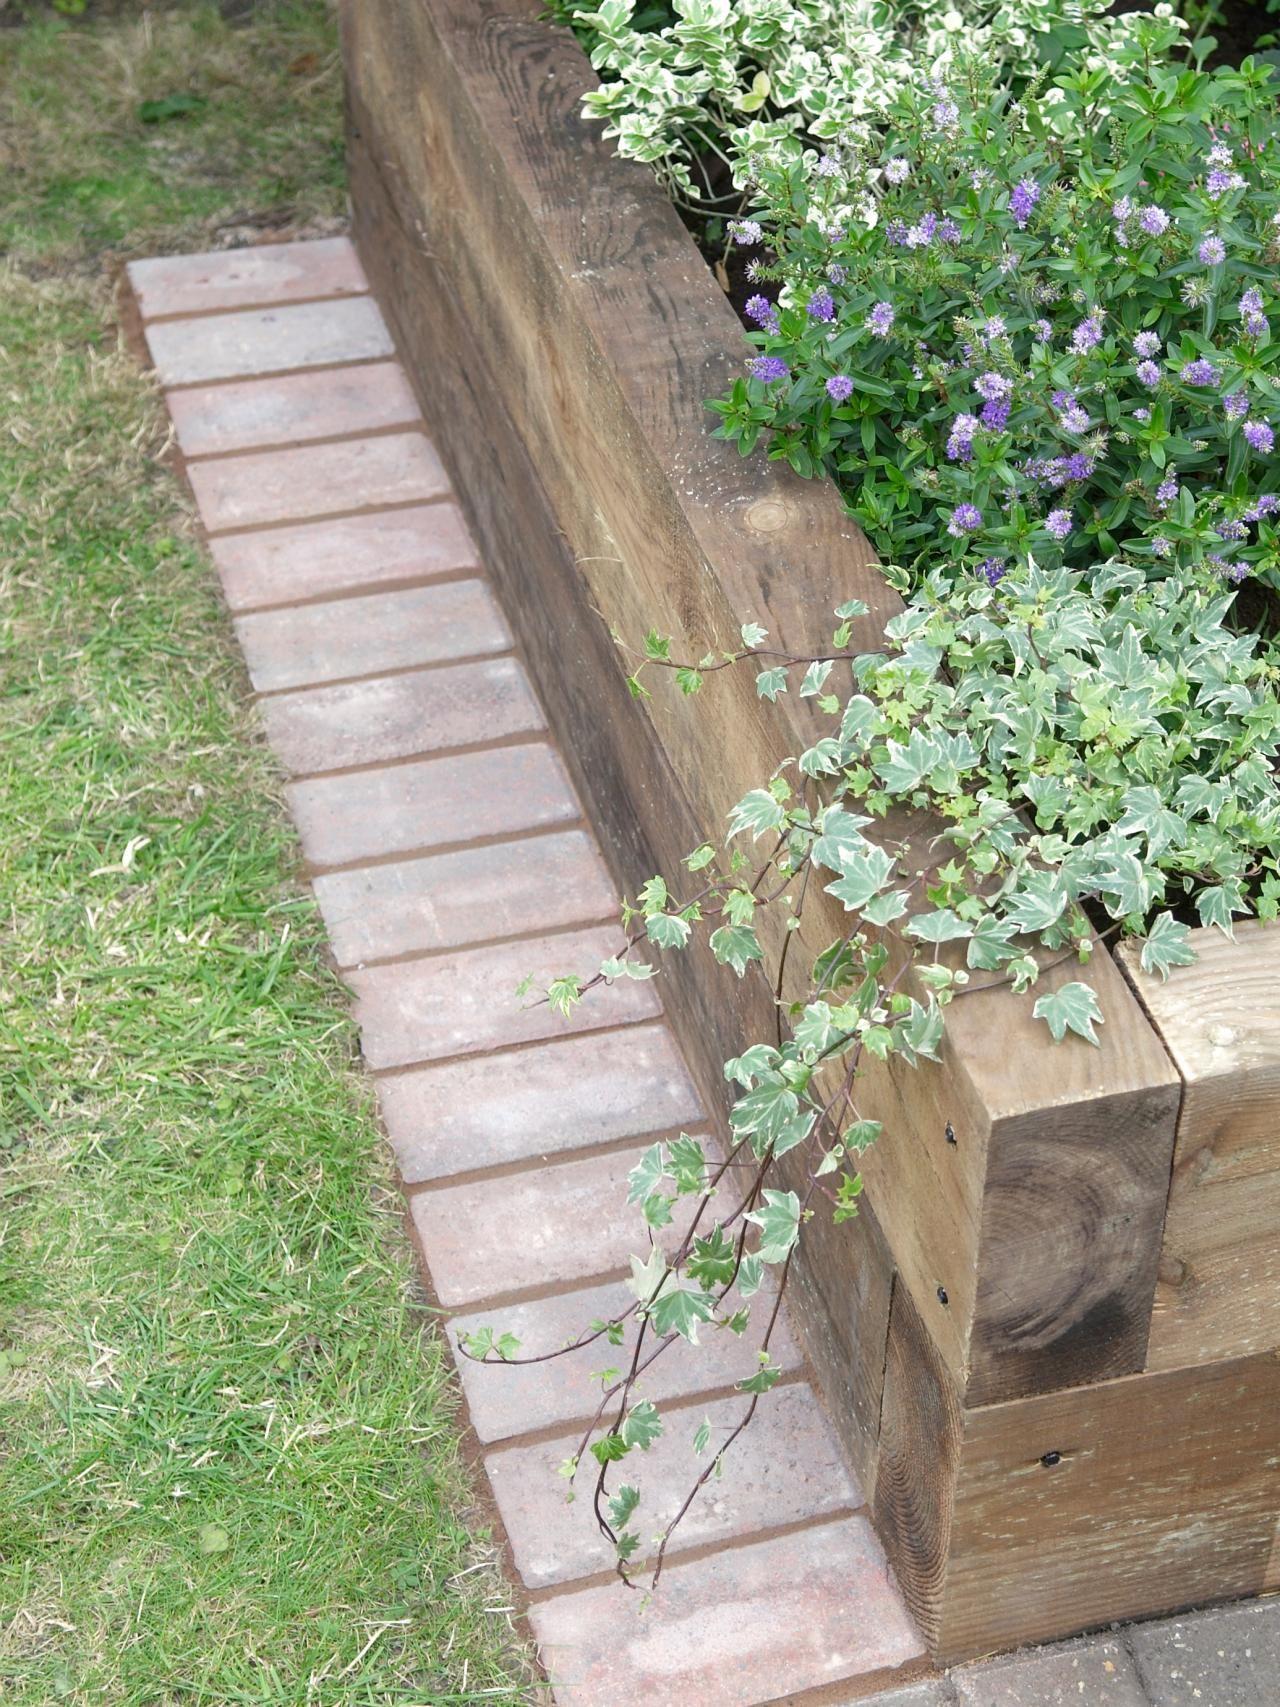 How to Install a Mowing Strip of Bricks Diy garden bed